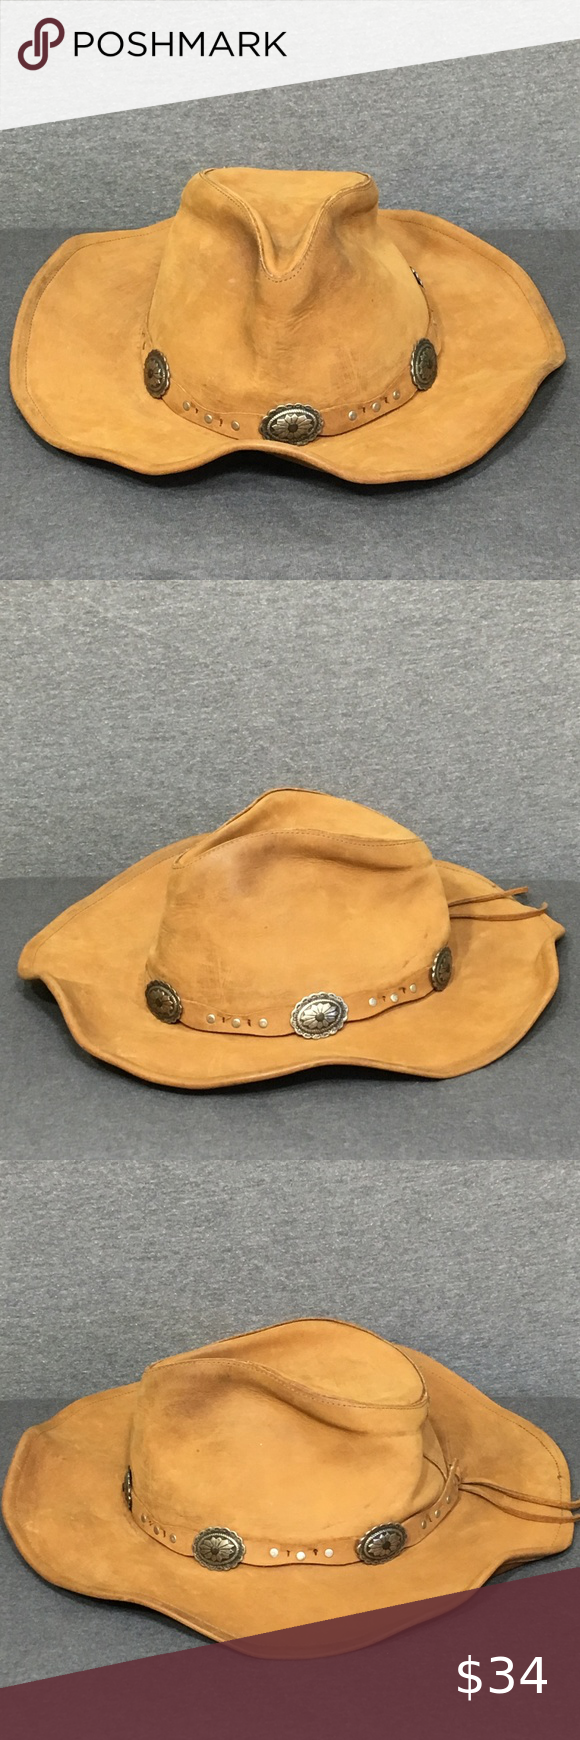 Stetson Leather Hat Brand Stetson Size Medium Item Brown Leather Cowboy Hat Features Roxbury Rodeo Style P Leather Hats Rodeo Fashion Leather Cowboy Hats